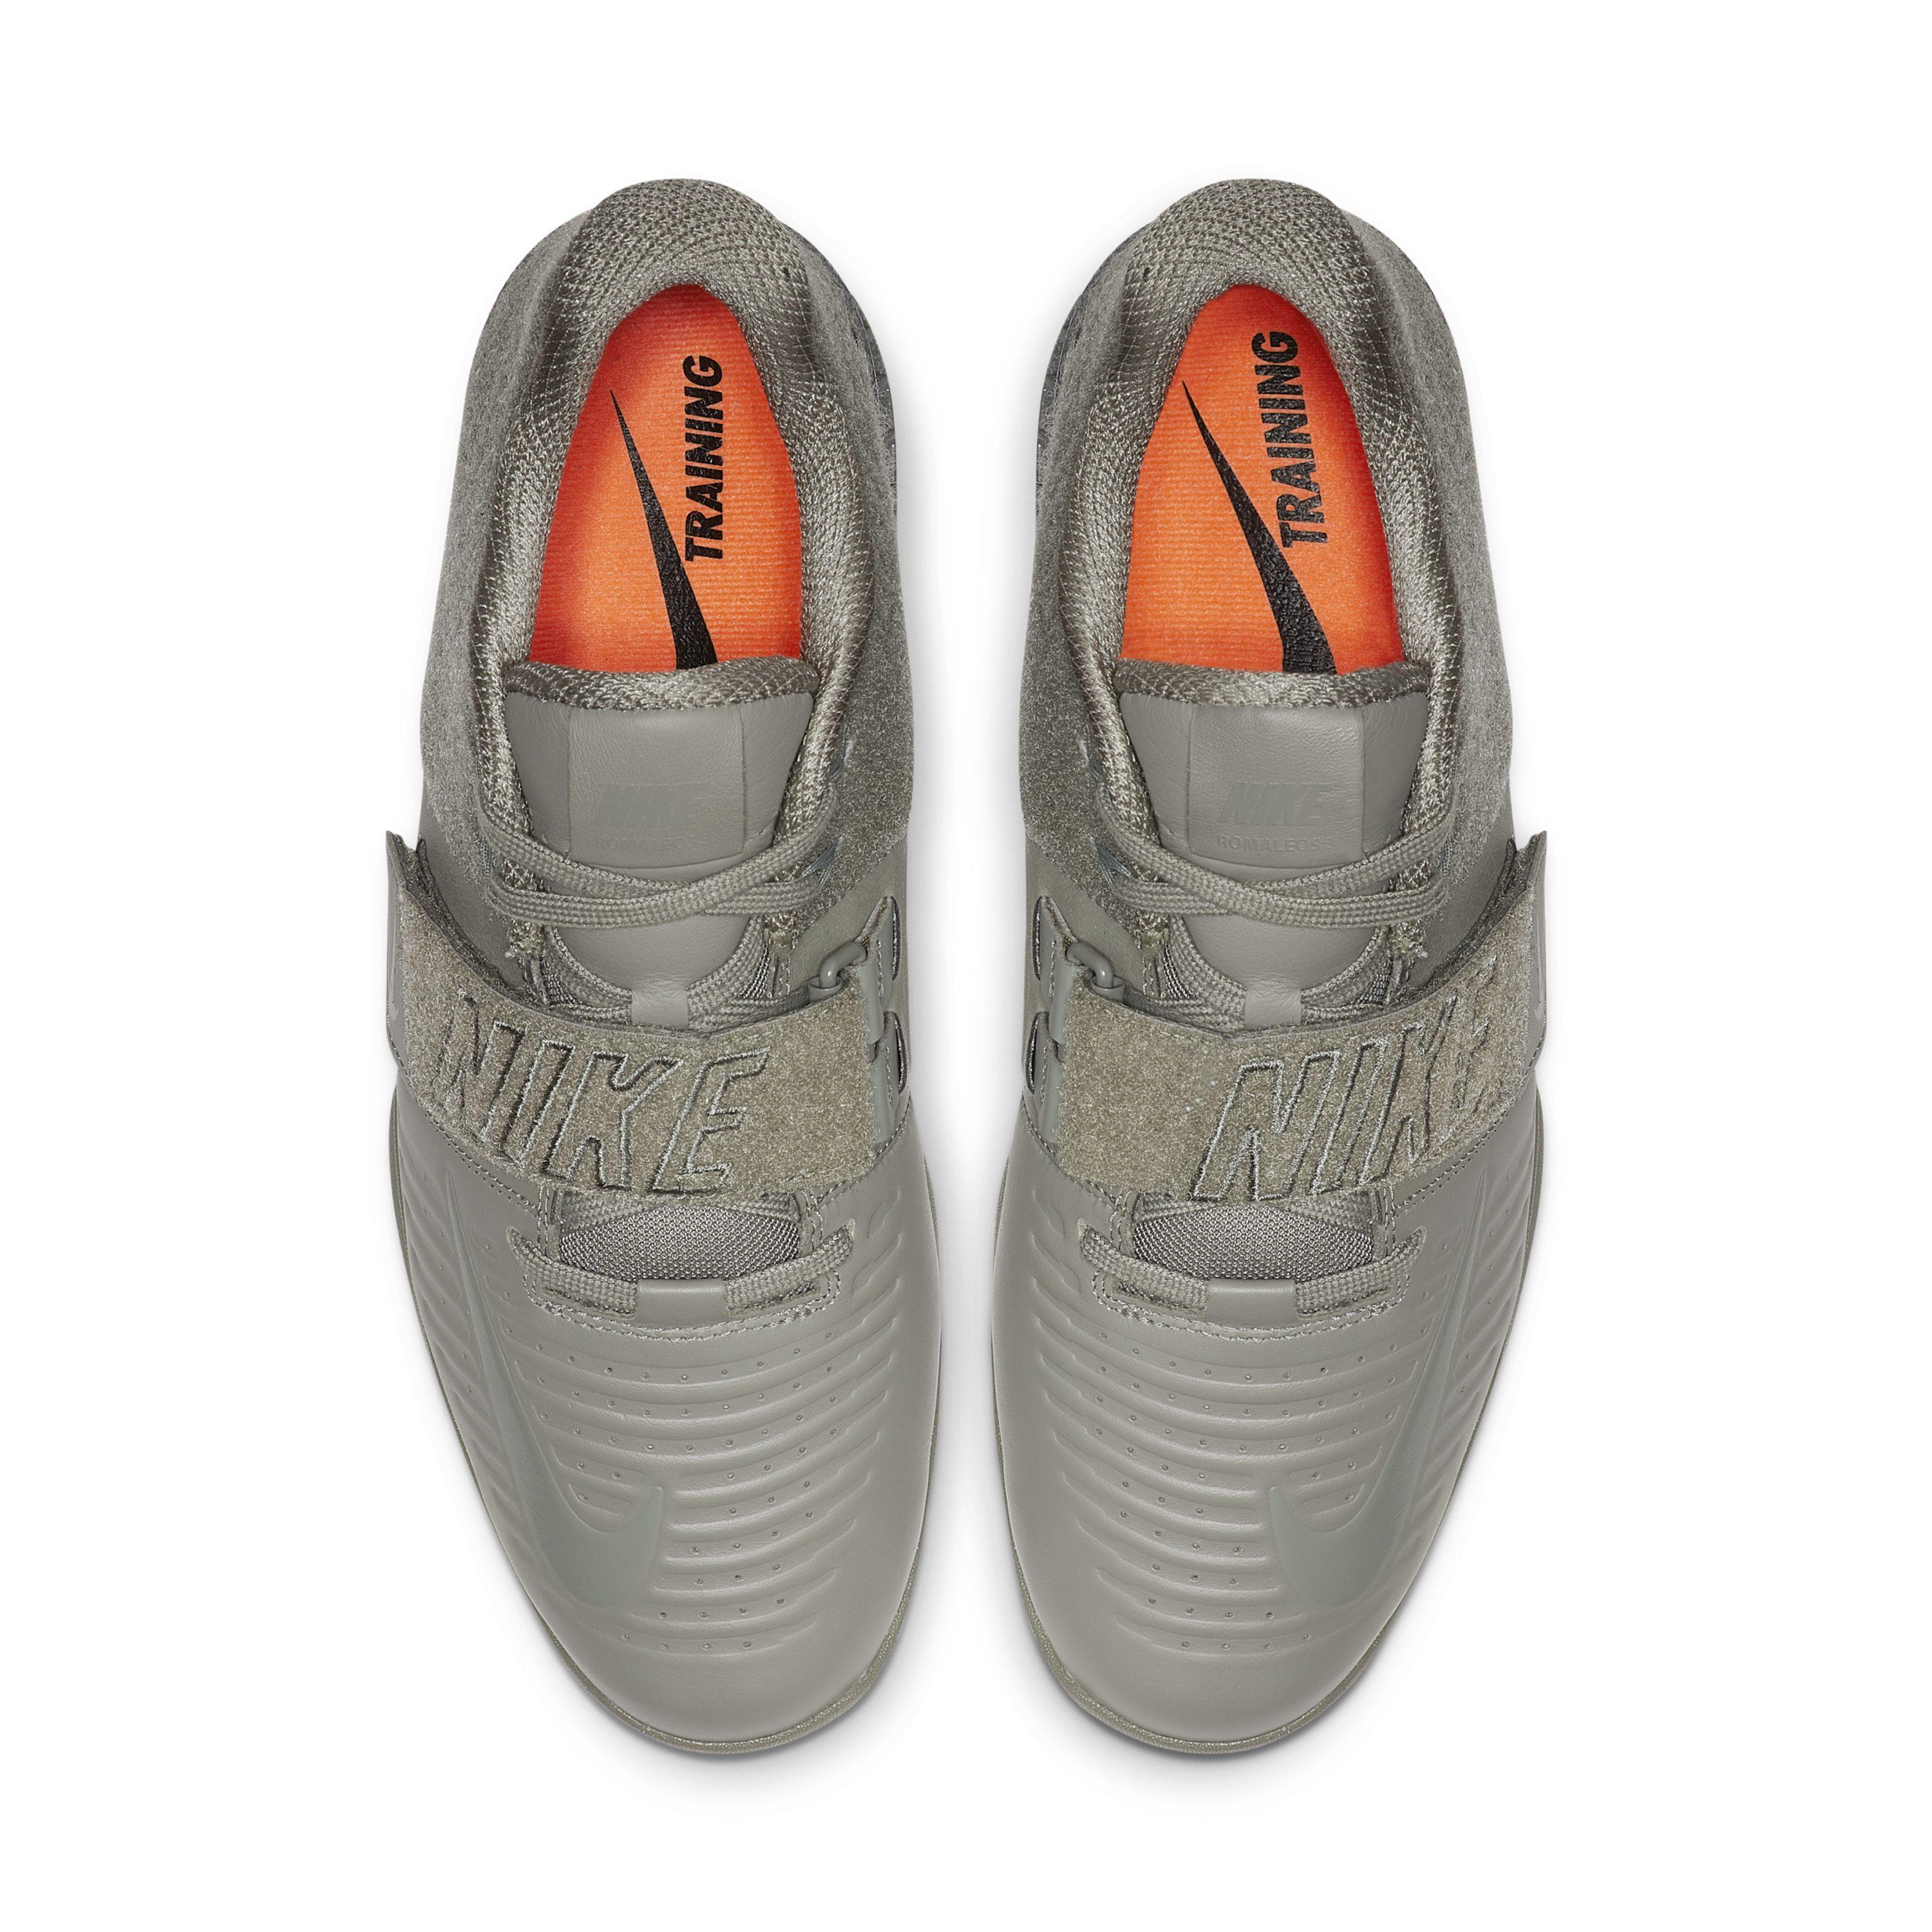 c09a65d5 Nike Romaleos 3 Xd Patch Training Shoe in Gray for Men - Lyst